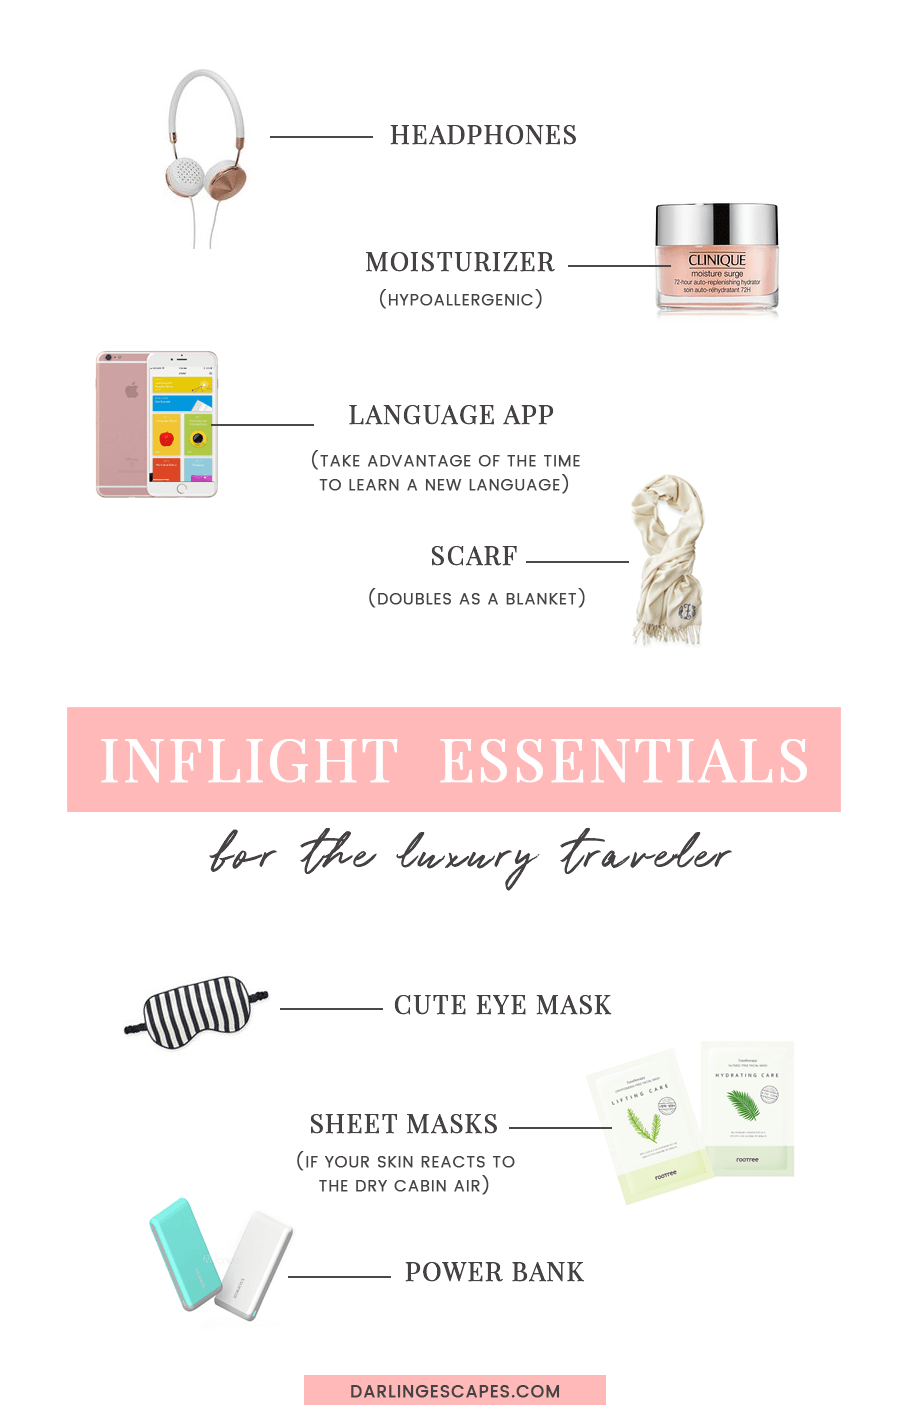 The ultimate list of carry on inflight essentials for luxury travelers!